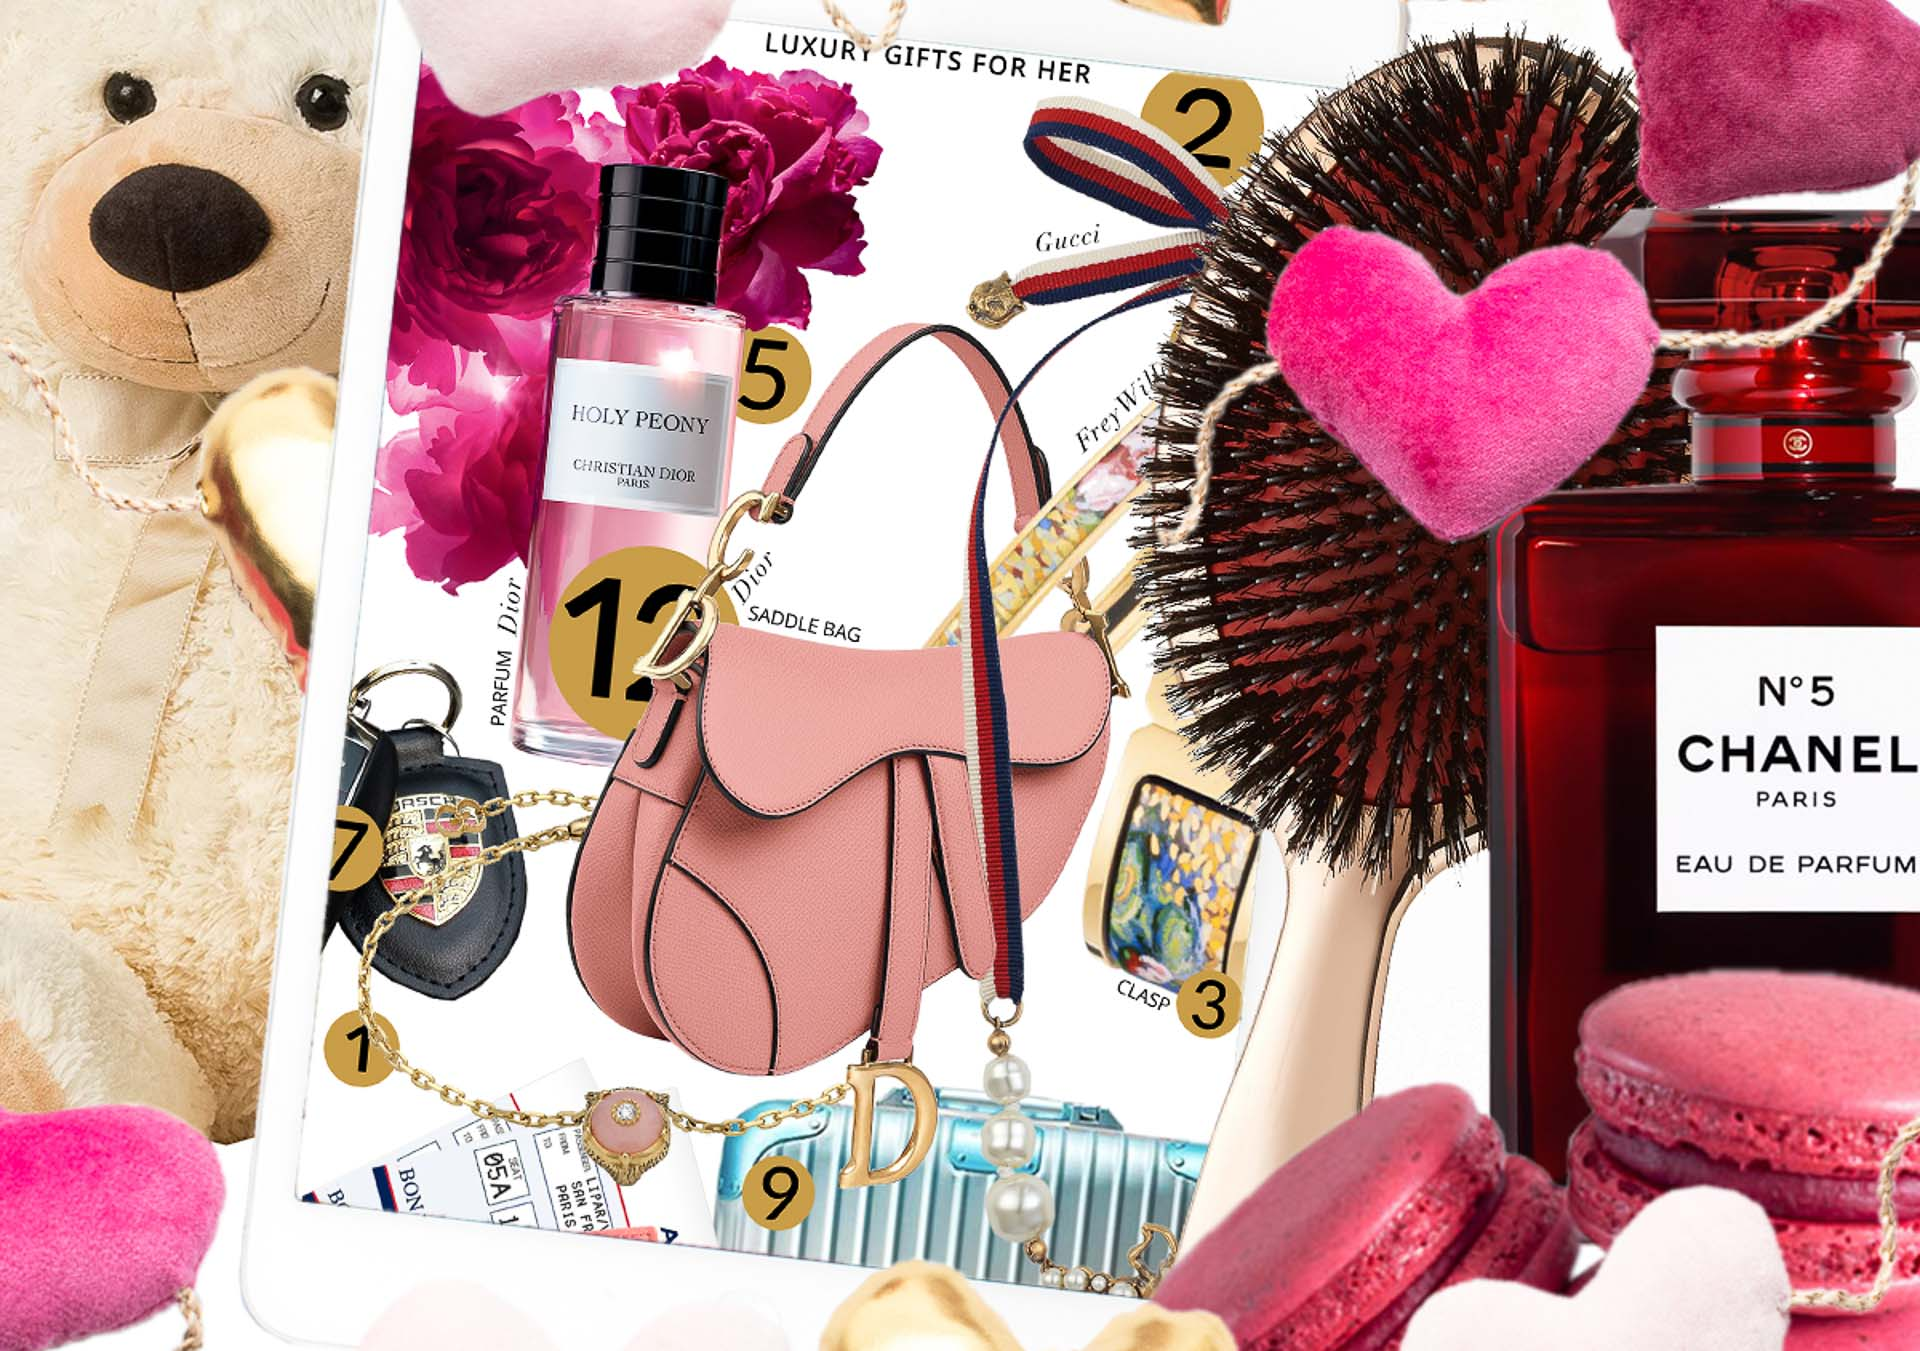 Brunette from Wall Street What to do if you want to make up with her pink hearts macarons Balmain rose gold brush teddy bear Dior saddle bag Dior Holy Peony Rimowa x Alex Israel